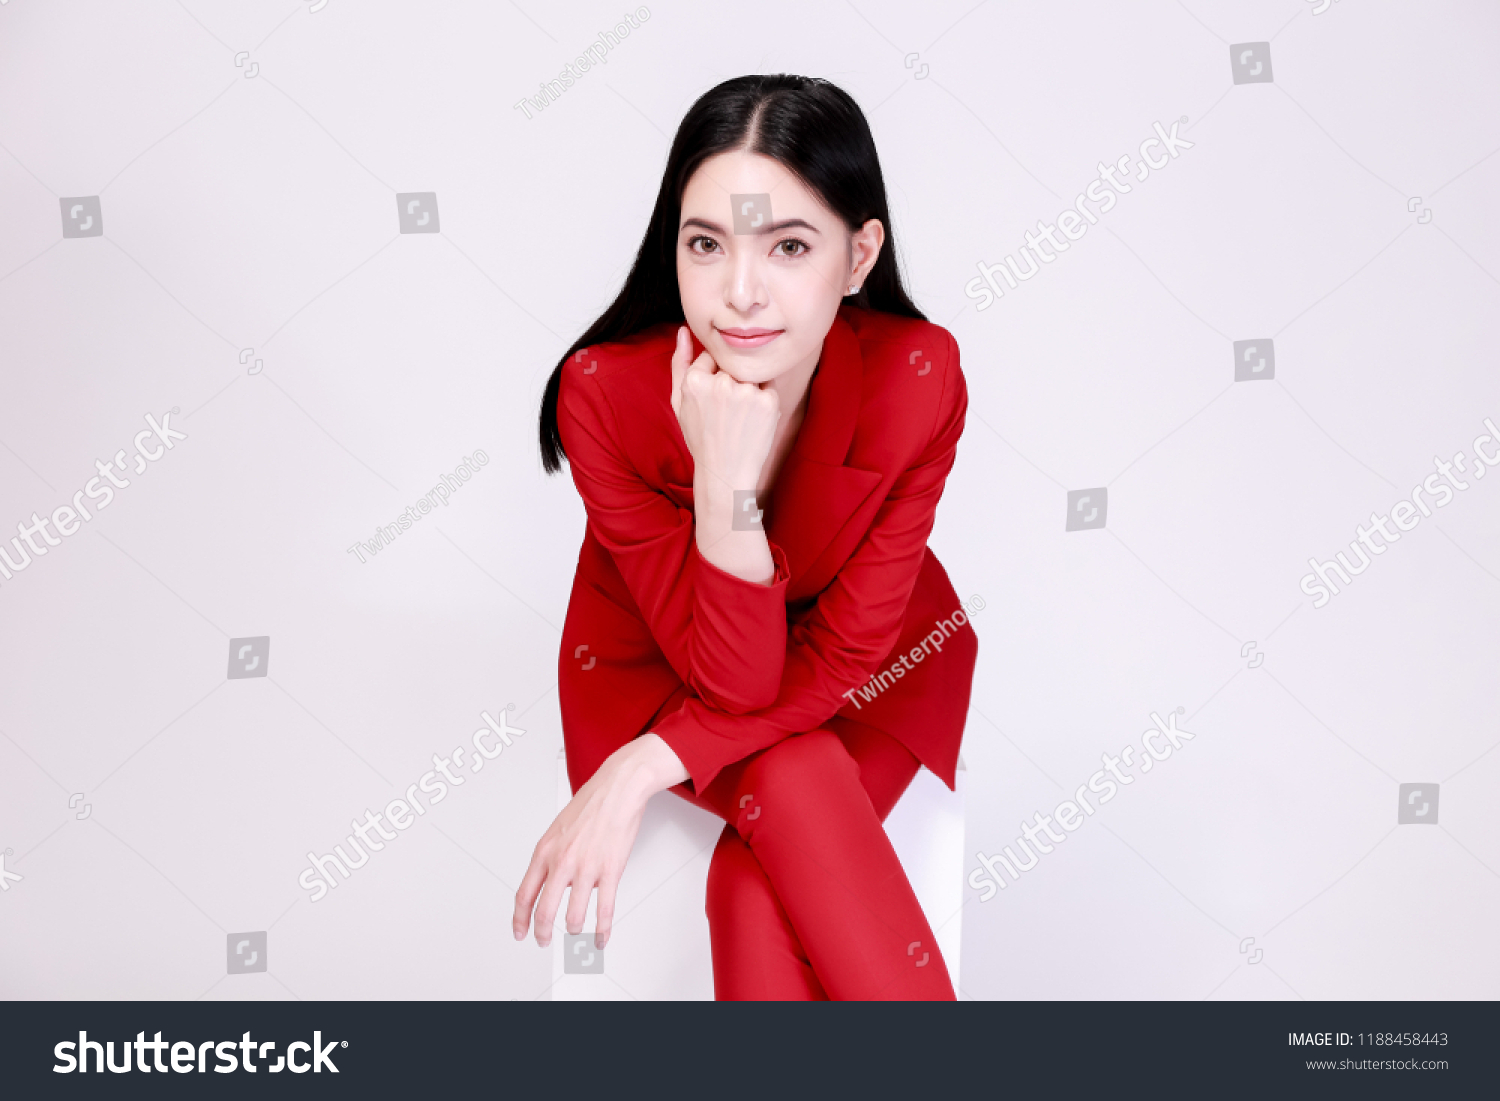 8d09c45e7fd Young confident Asian woman in red elegant suit with pants posing sitting  in half body isolated